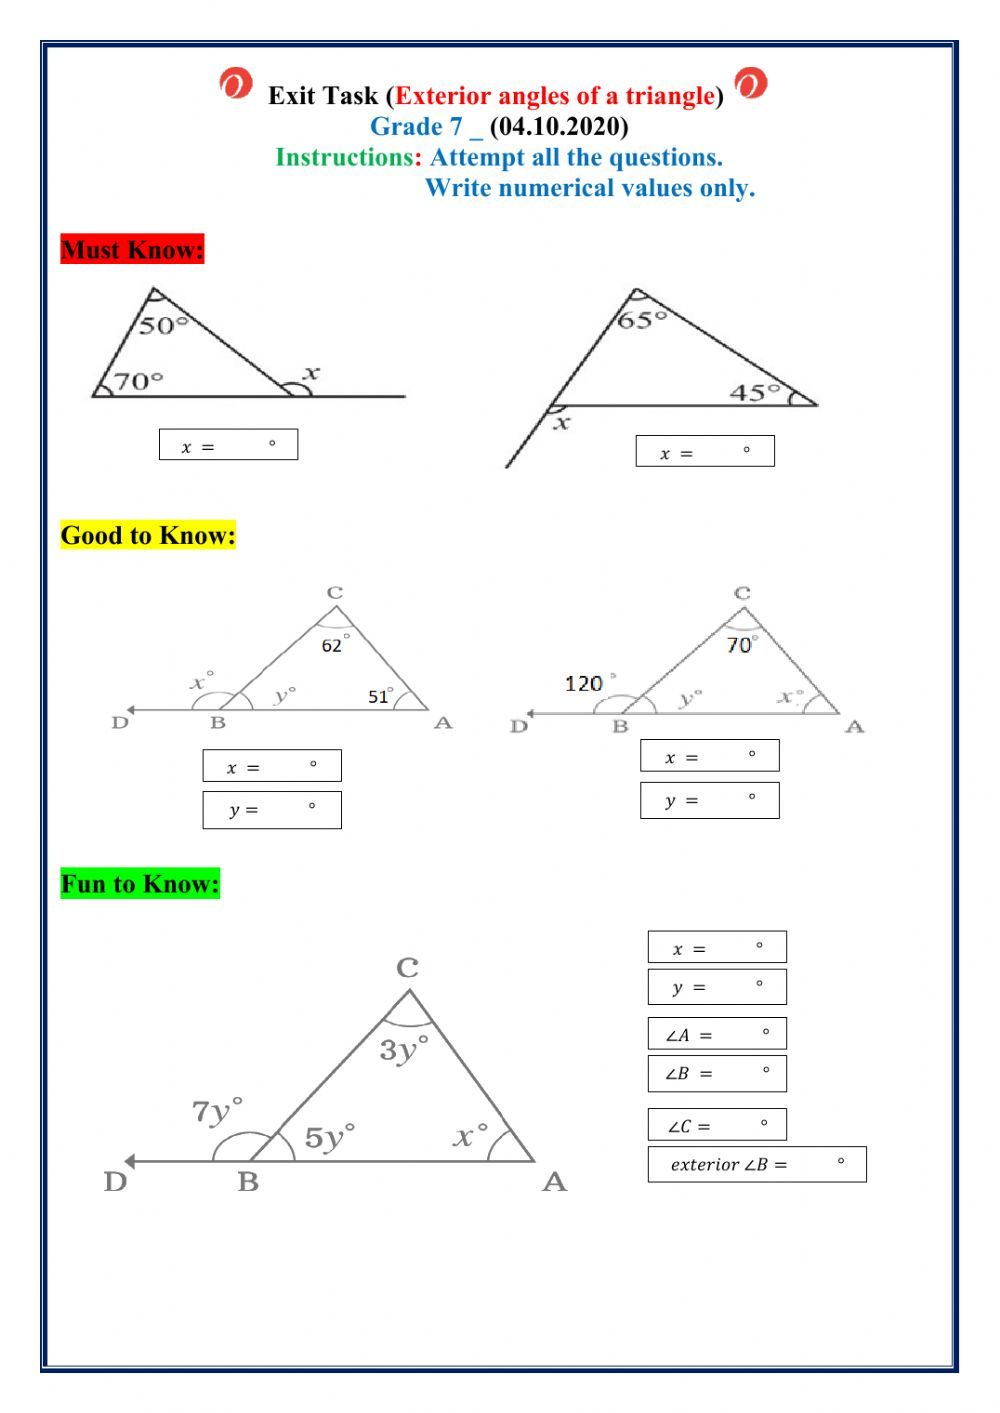 medium resolution of Exterior angles of a triangle interactive worksheet